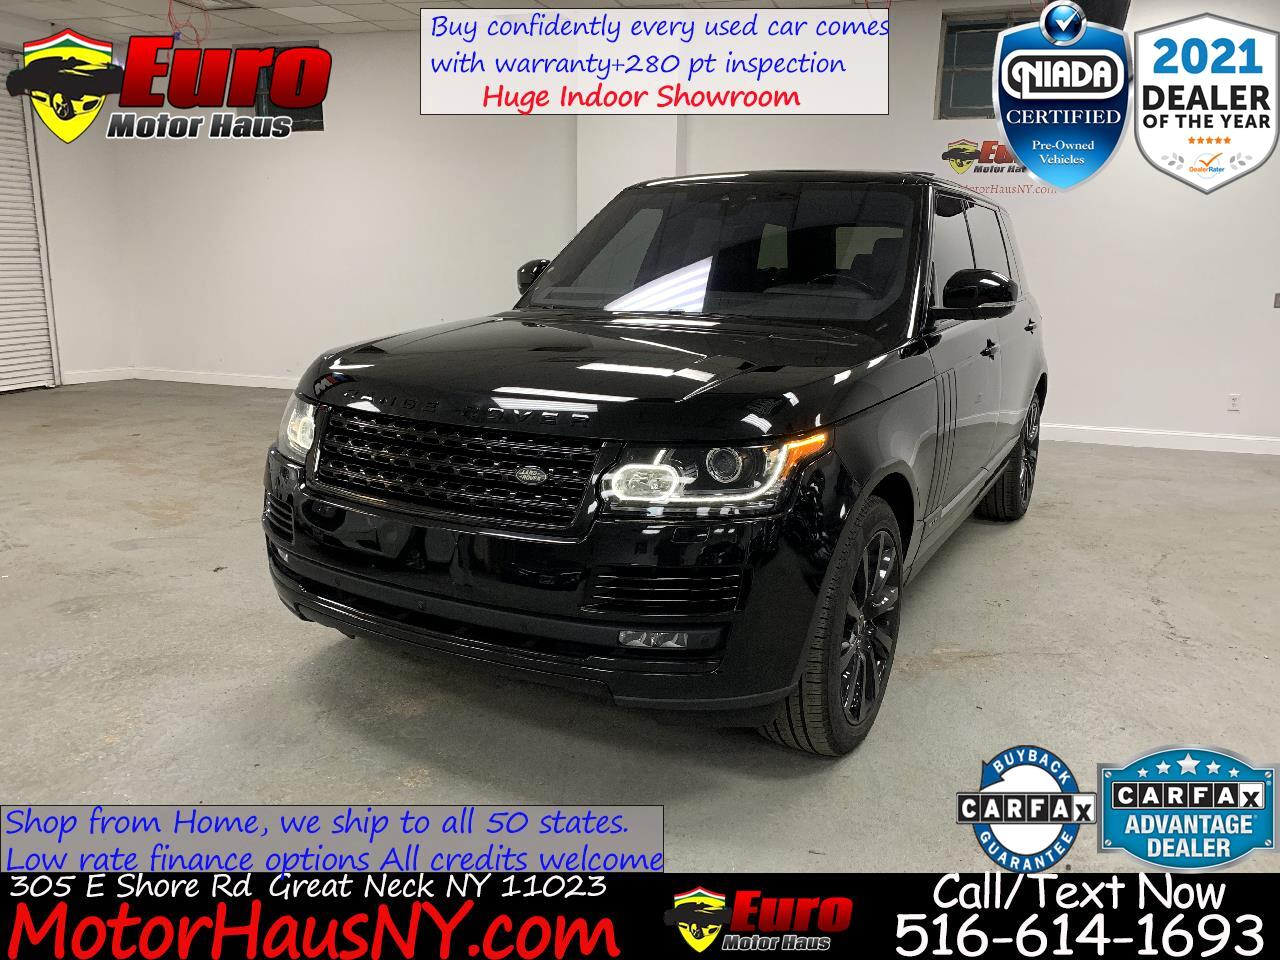 Land Rover Range Rover Supercharged LWB 2017